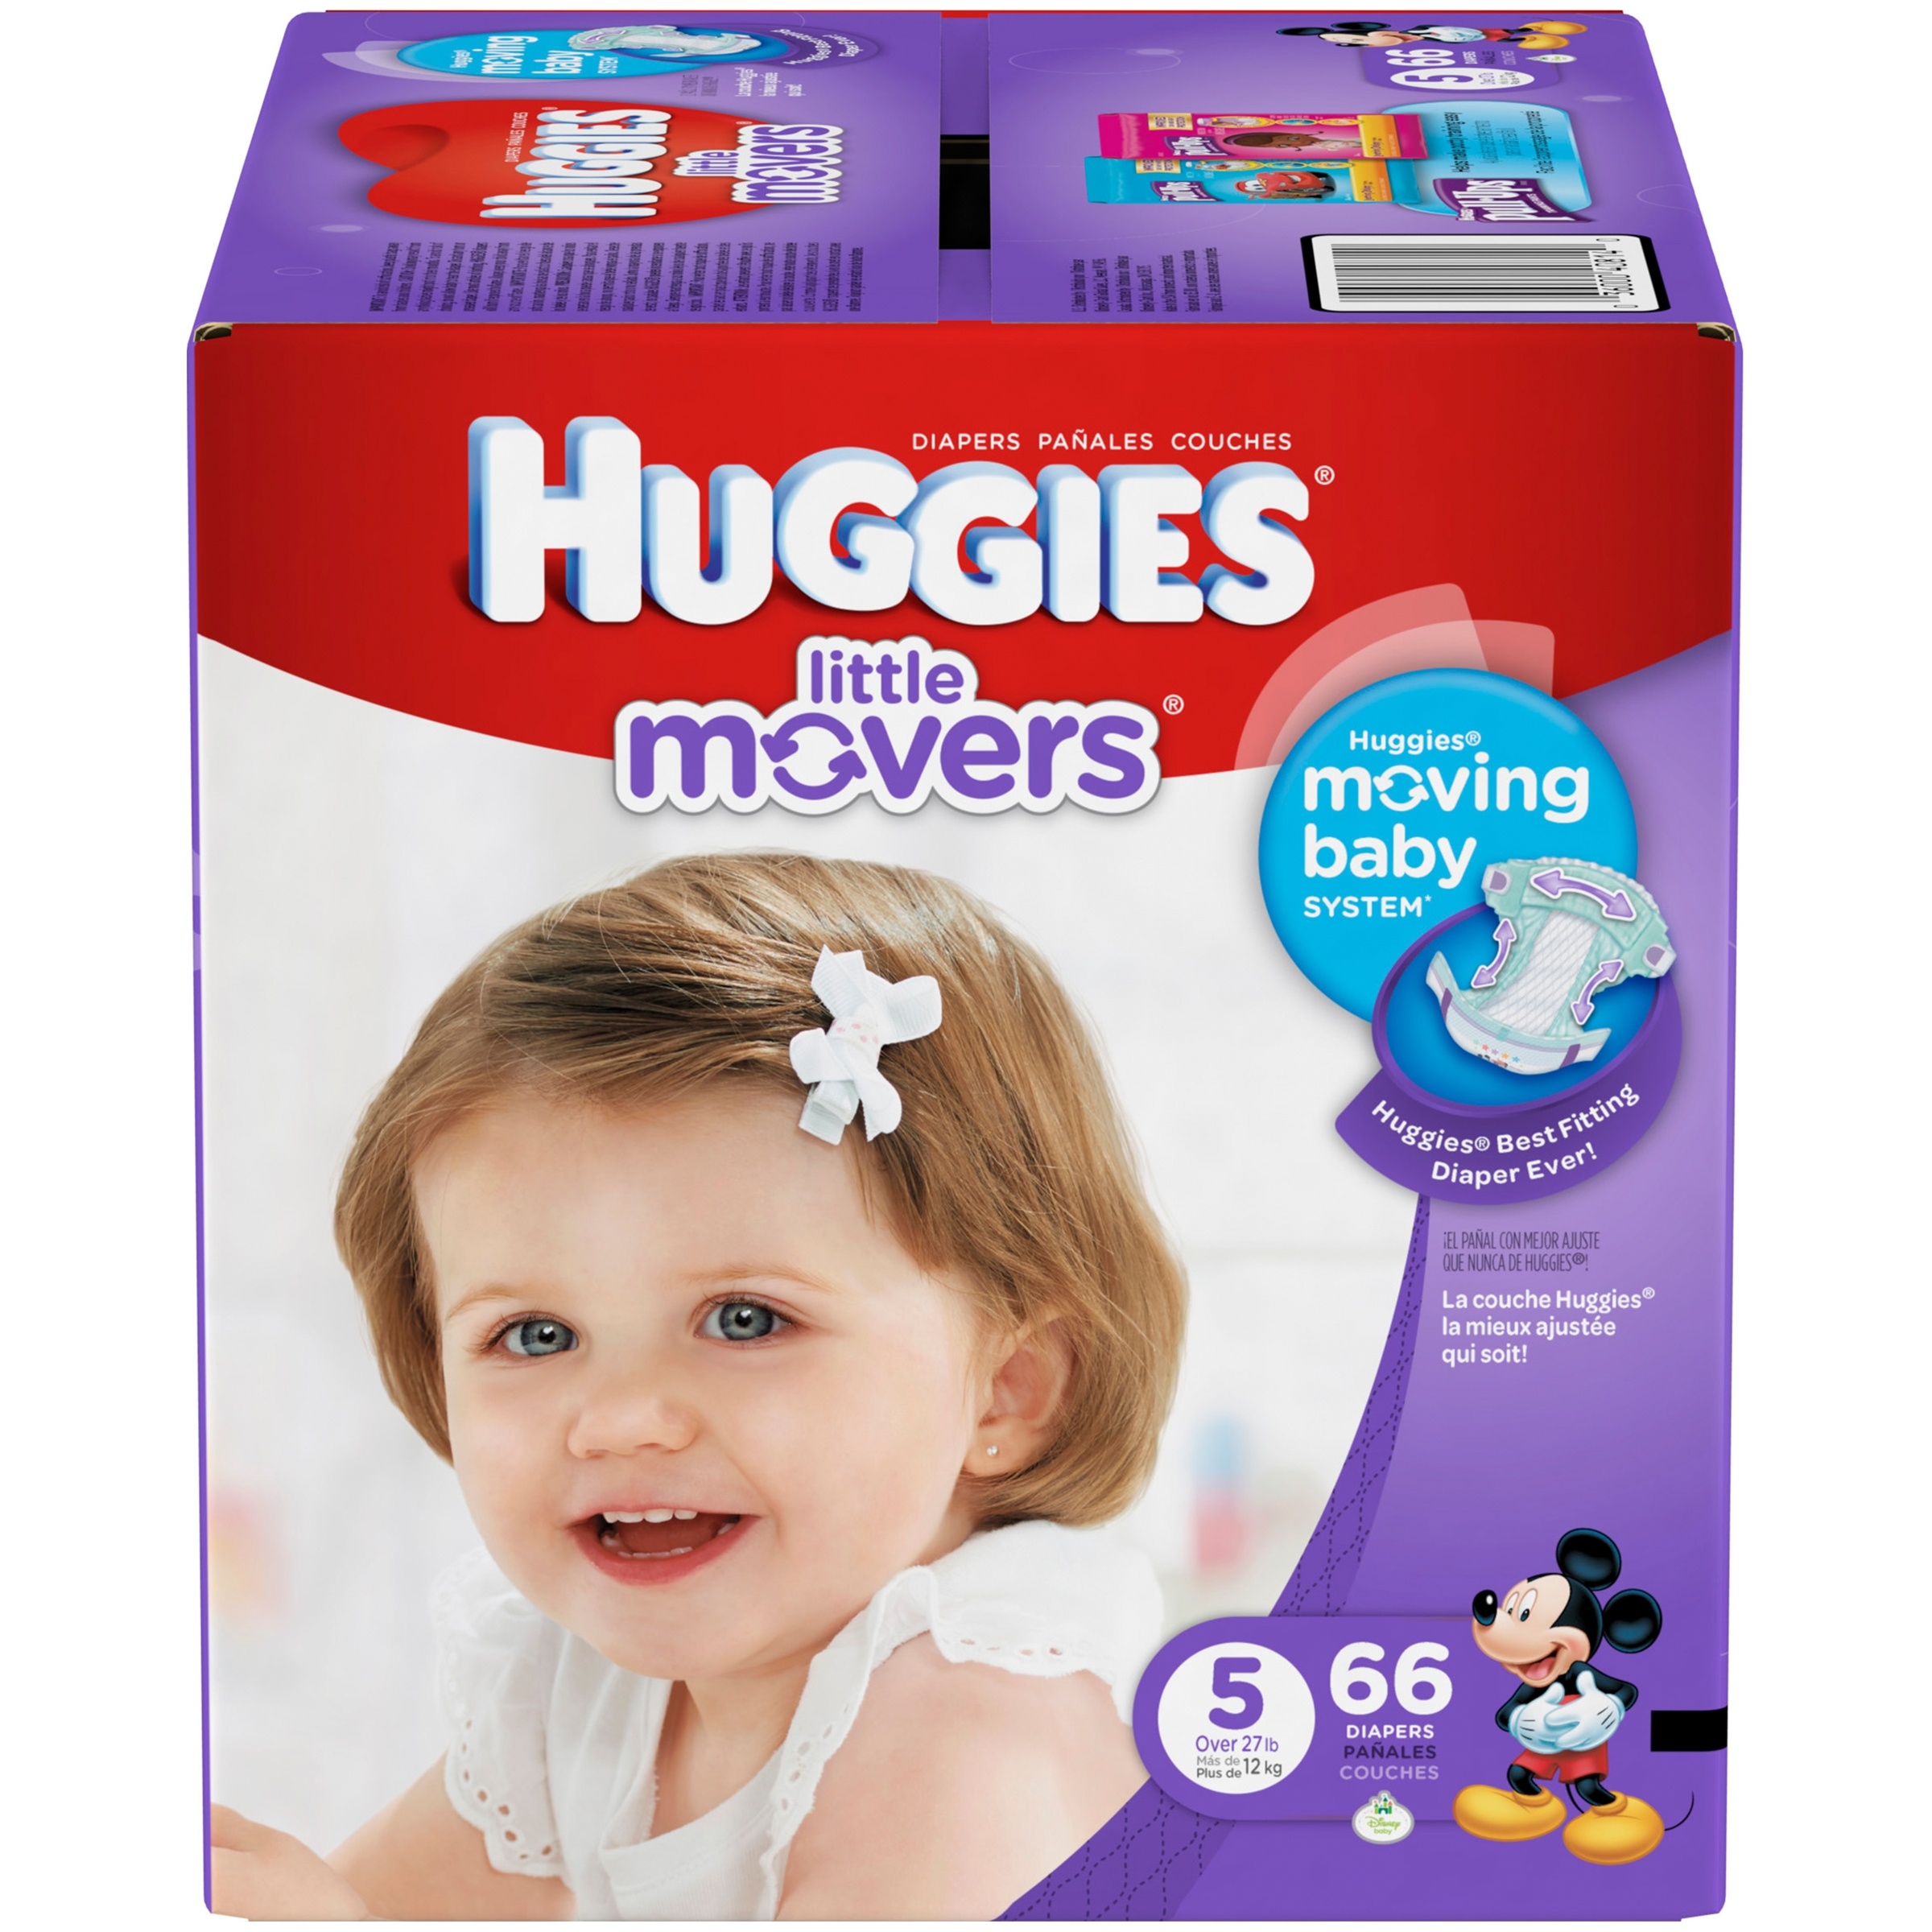 HUGGIES Little Movers Diapers, Size 5, 66 Diapers